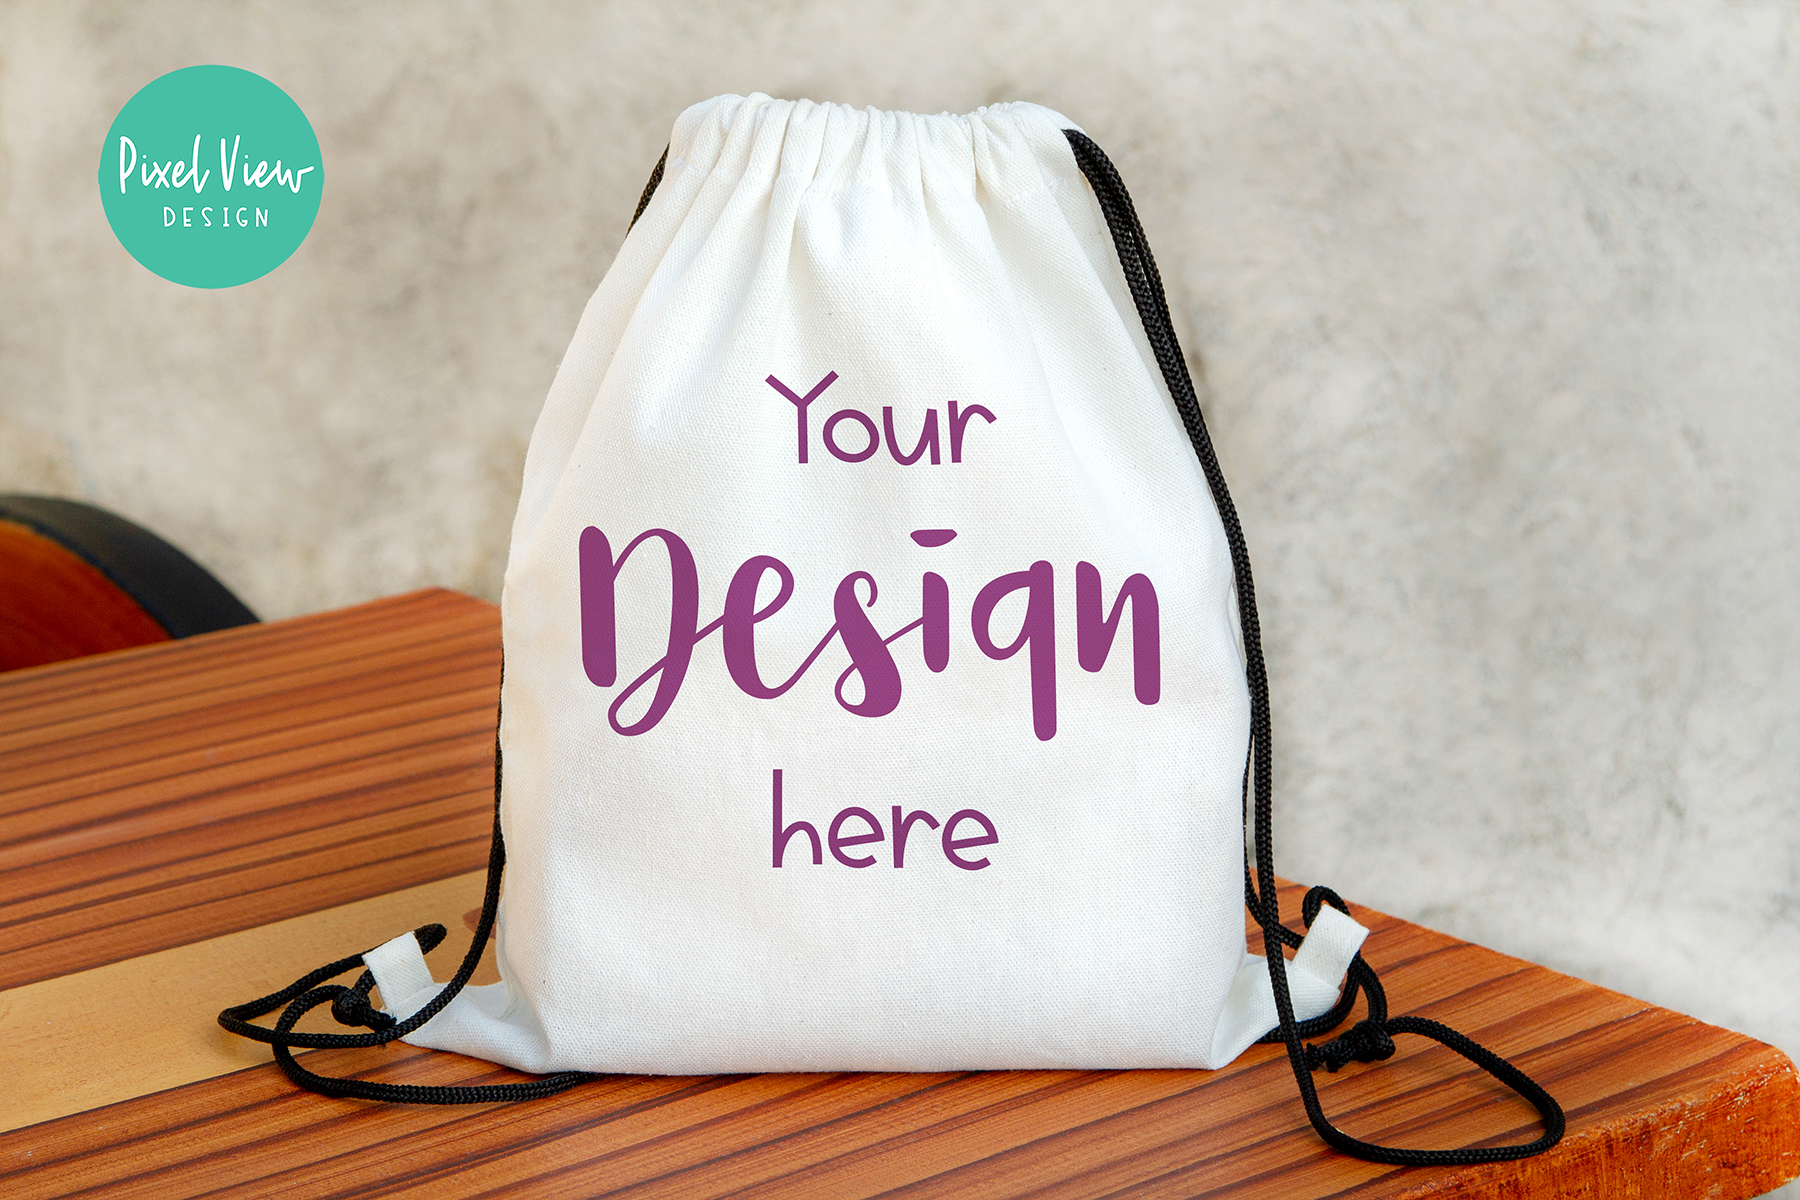 Download Free Canvas Bag Mockup I Outdoor Graphic By Pixel View Design for Cricut Explore, Silhouette and other cutting machines.